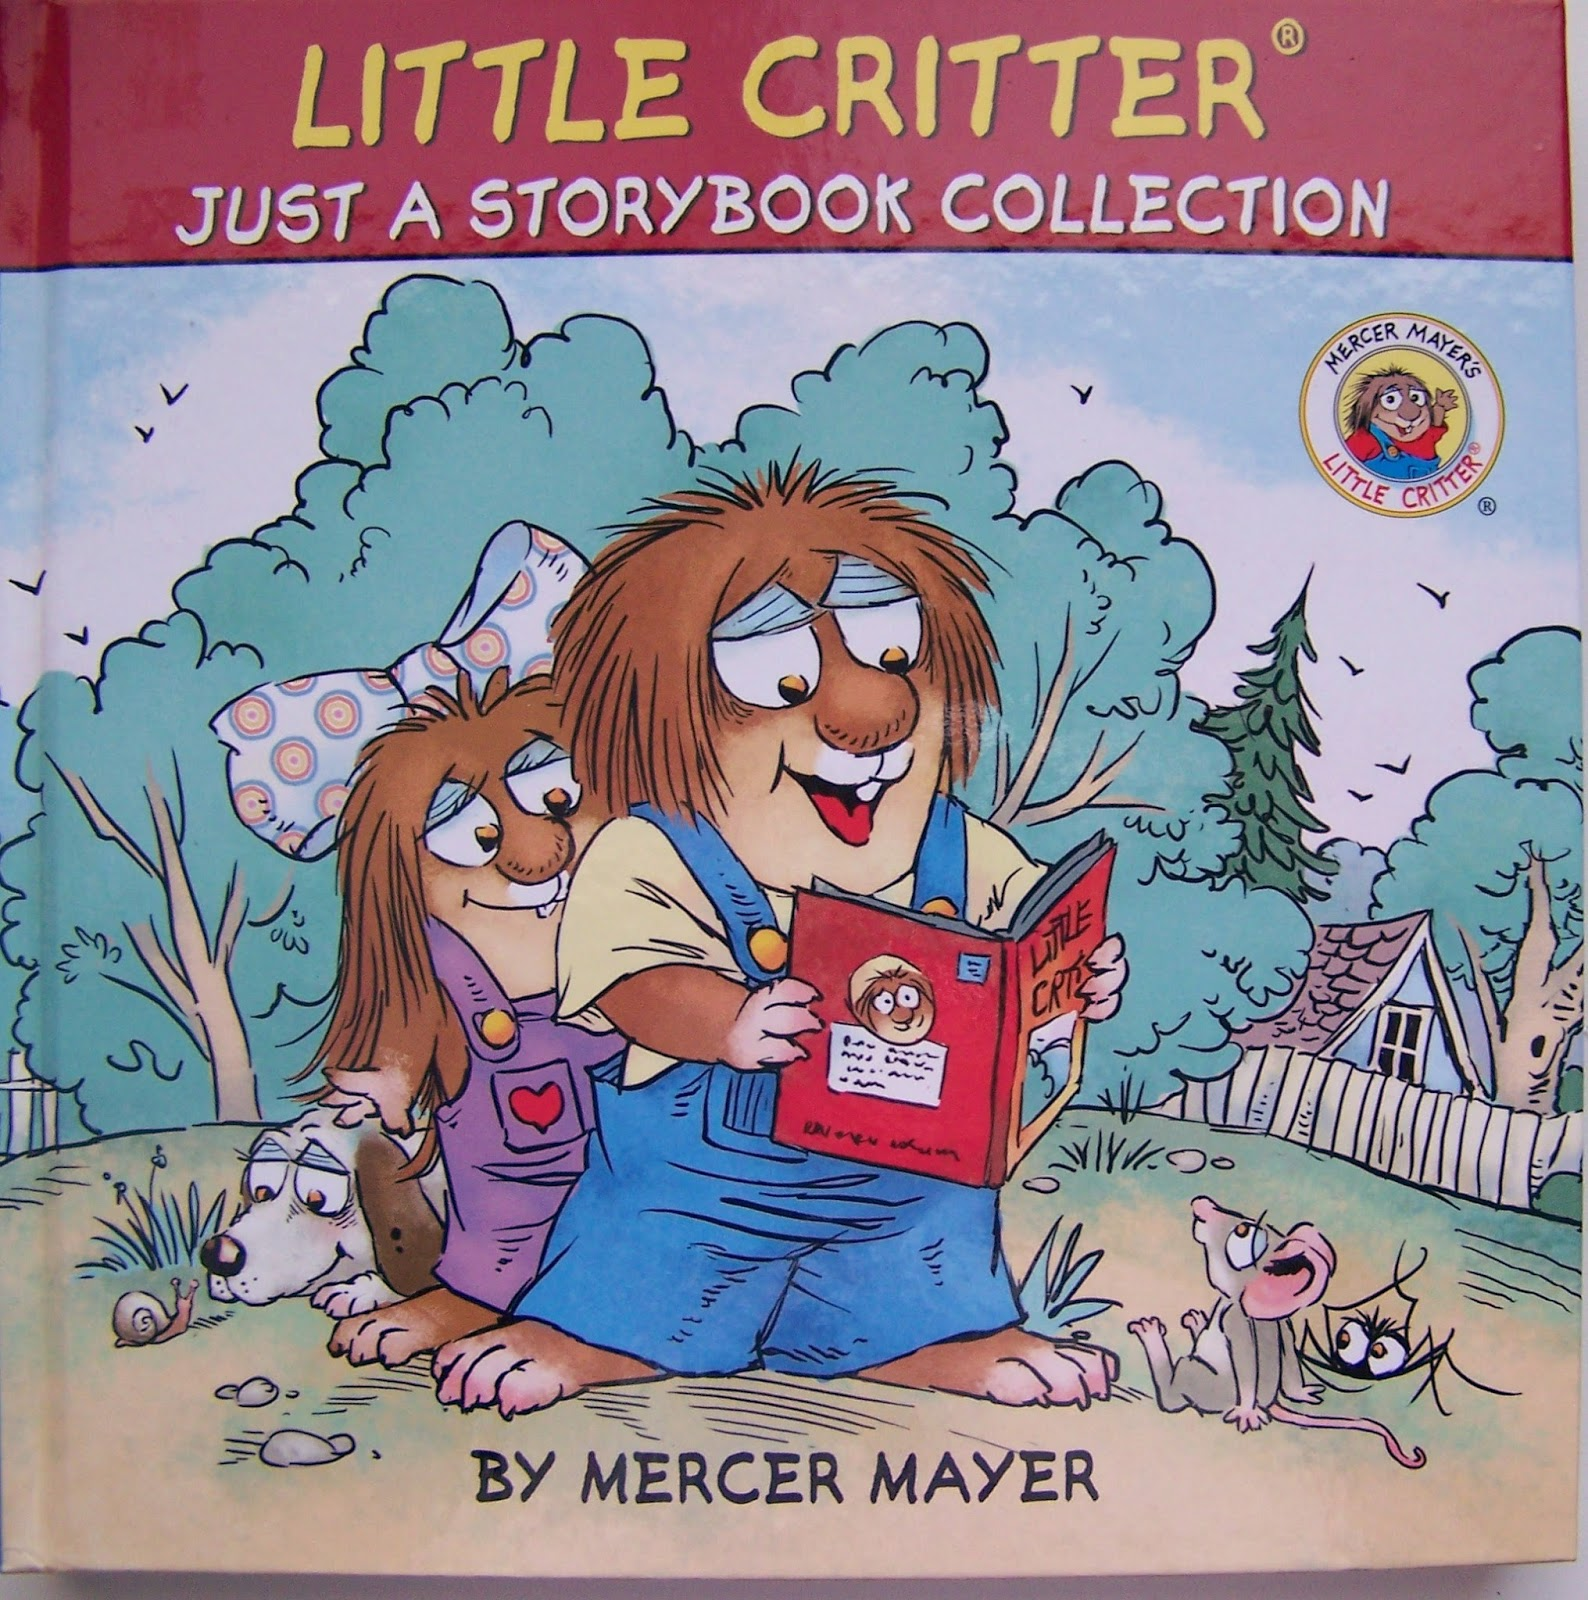 She Also Loves Little Critter And His Whole Family!